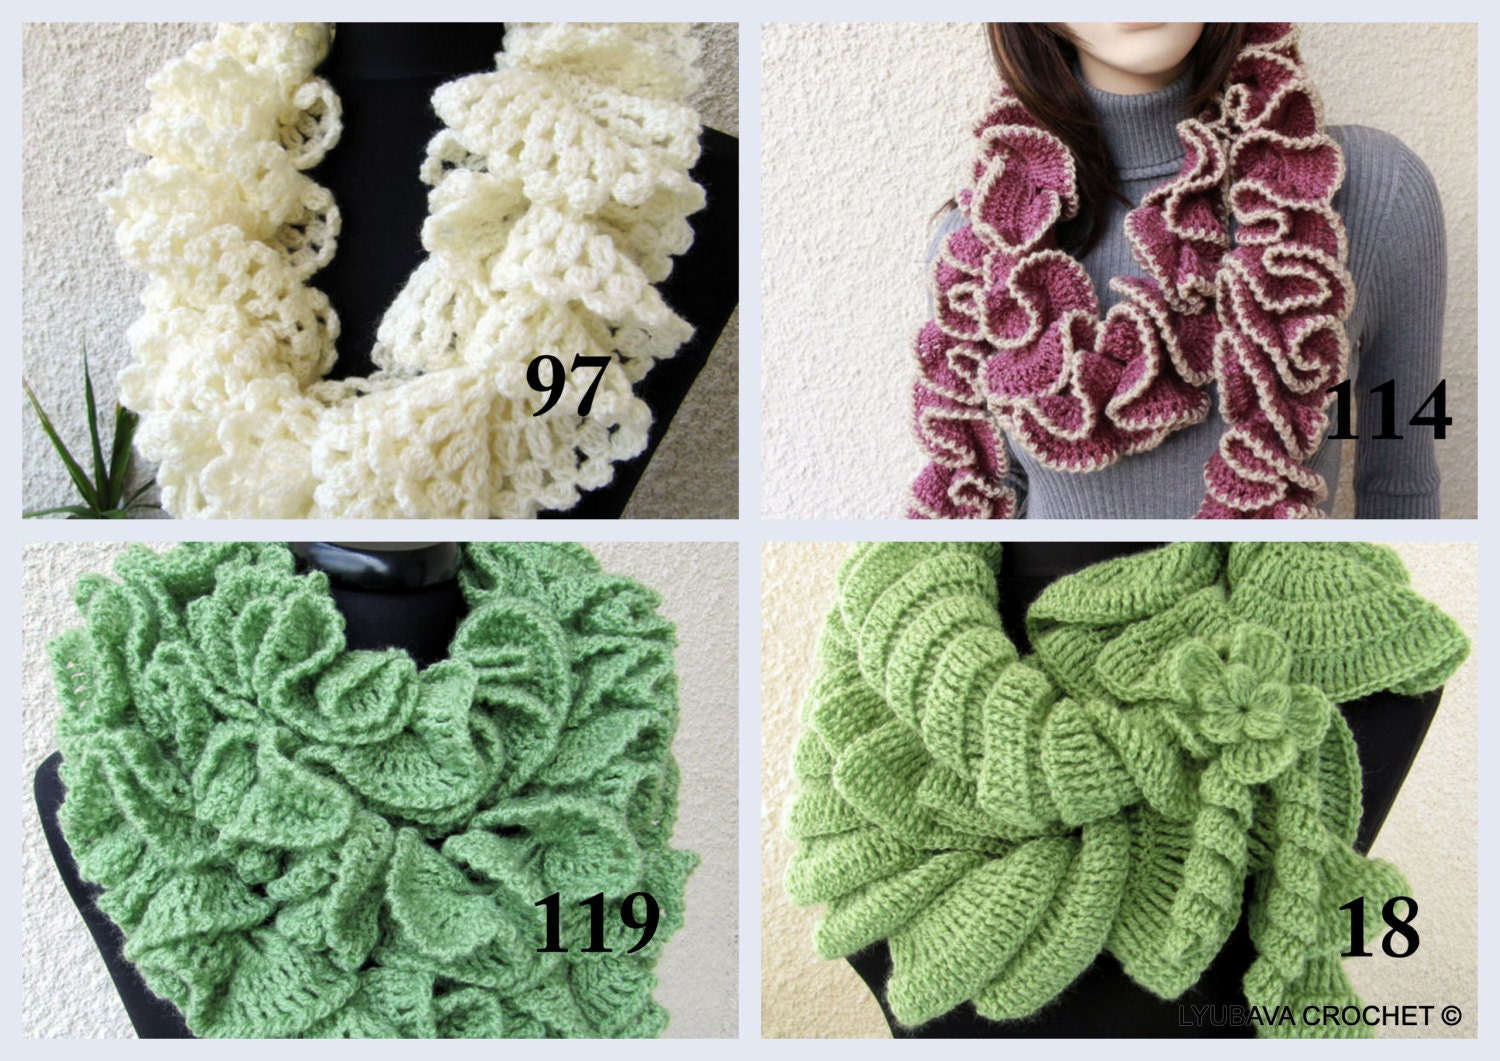 Crochet Stitches Unusual : Crochet Ruffle Scarf PATTERNS Unique Crochet by LyubavaCrochet